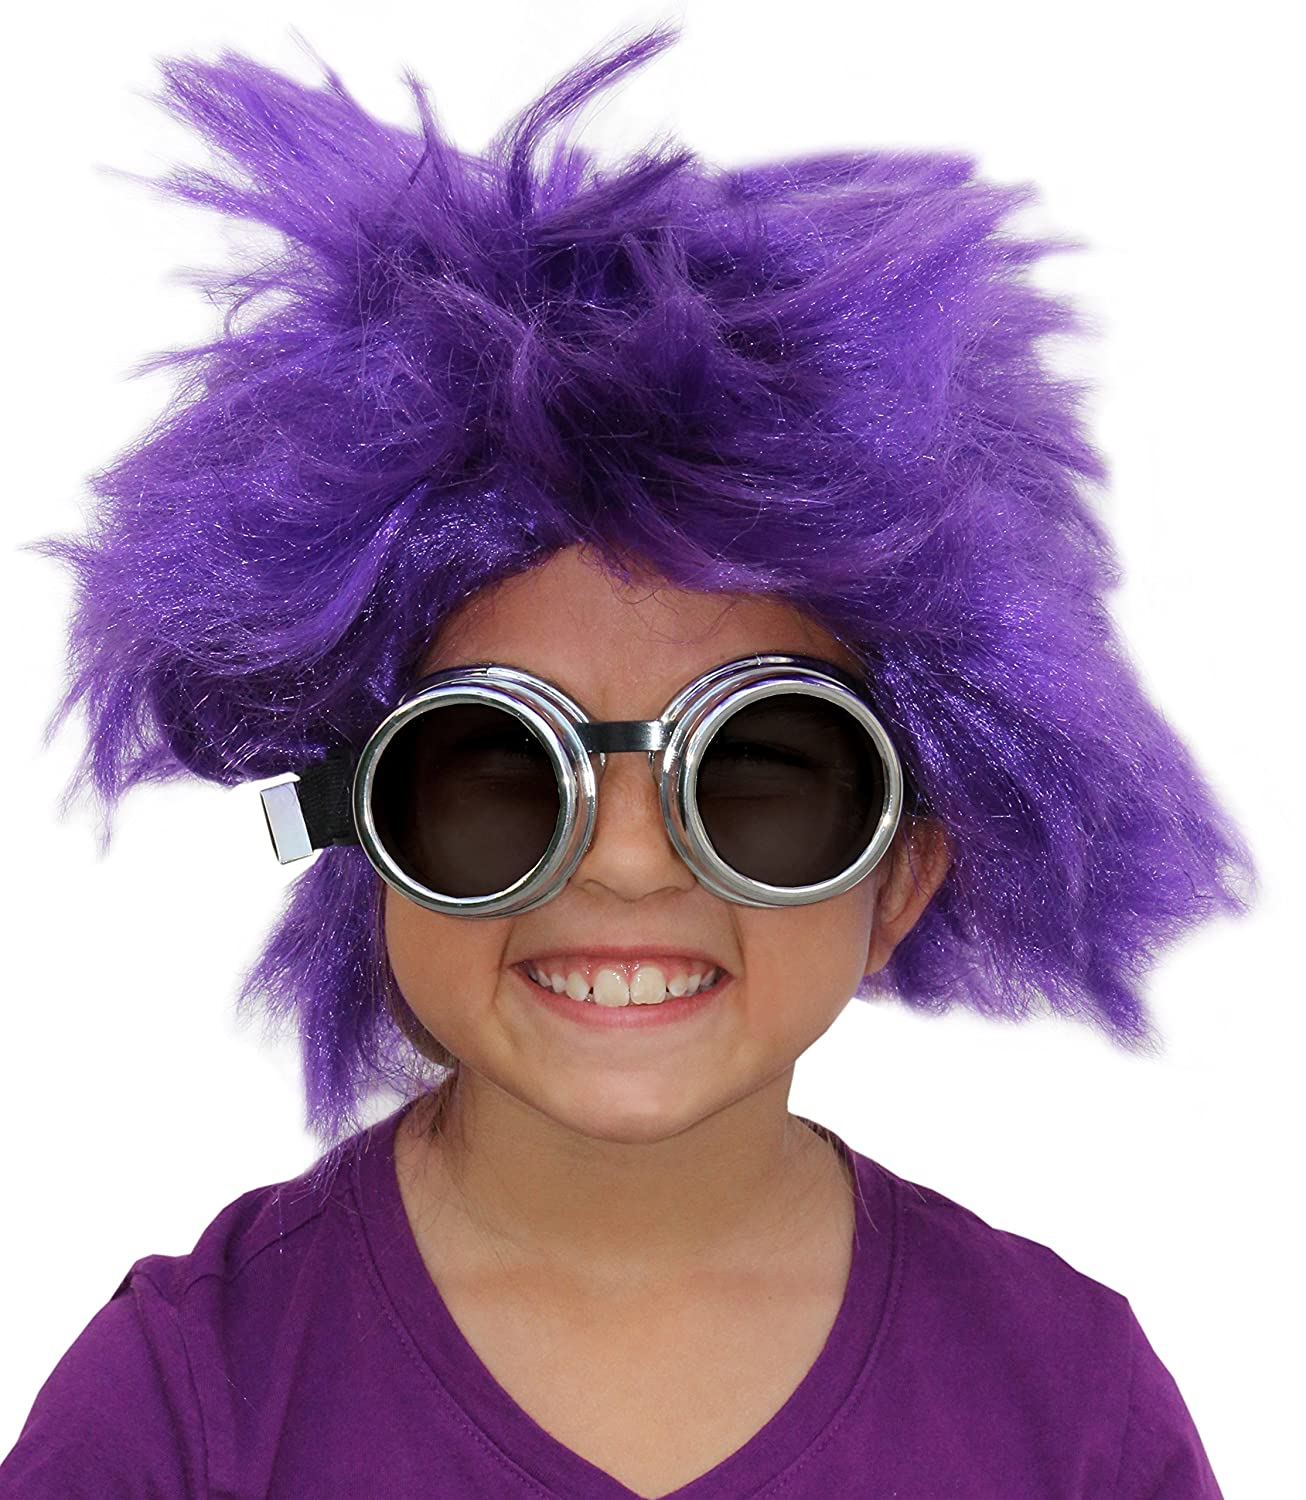 Amazon.com: Afro Wig Purple Minion Costume Set Purple Minion Wig and Minion Goggles: Clothing